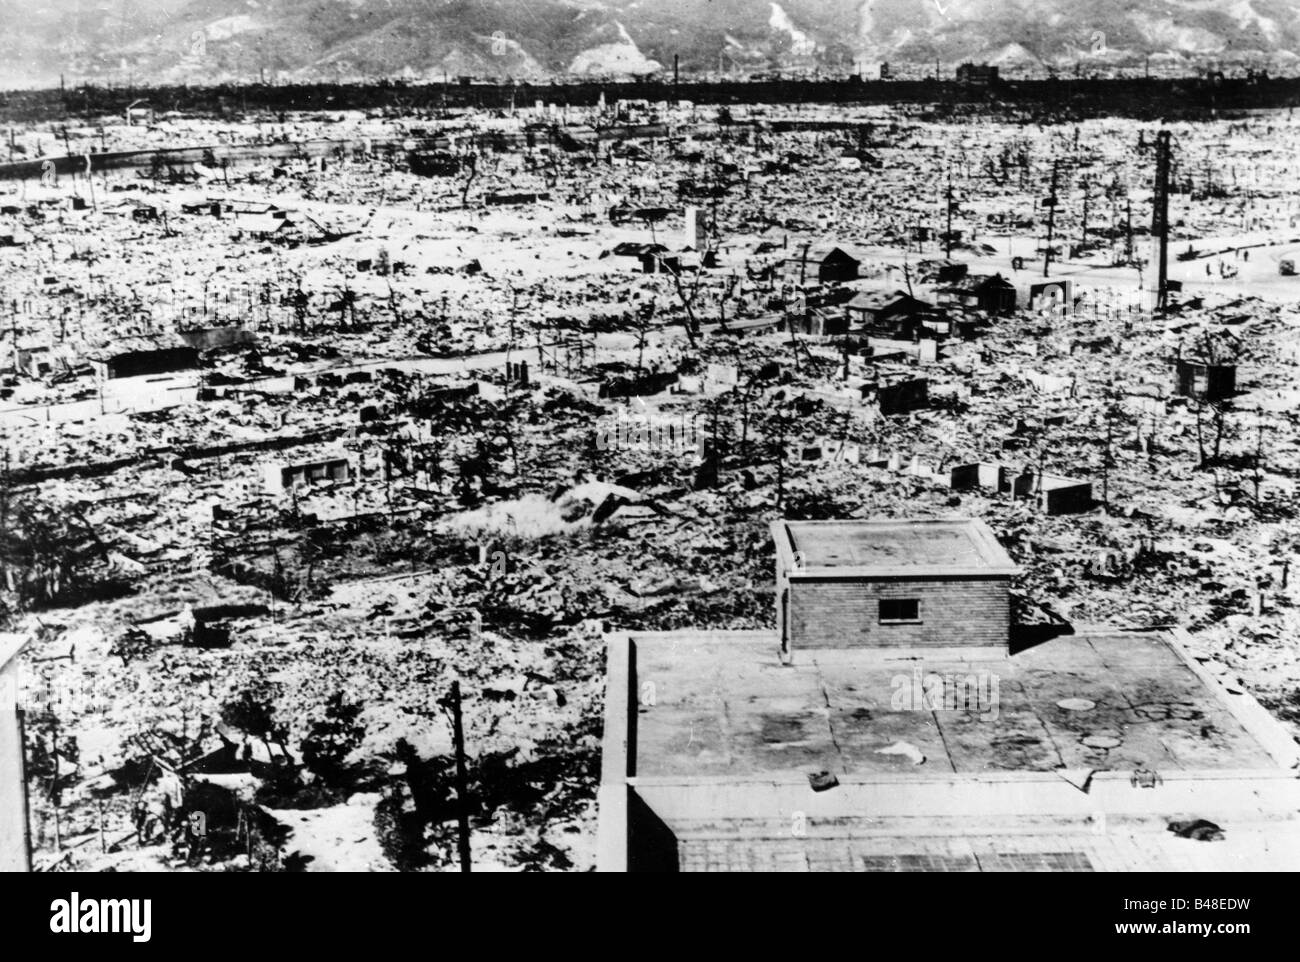 the effects of the world war ii atomic bombs The economic effect on japan during post world war ii japan's economy was greatly affected by the atomic bombs dropped on both hiroshima and nagasaki.